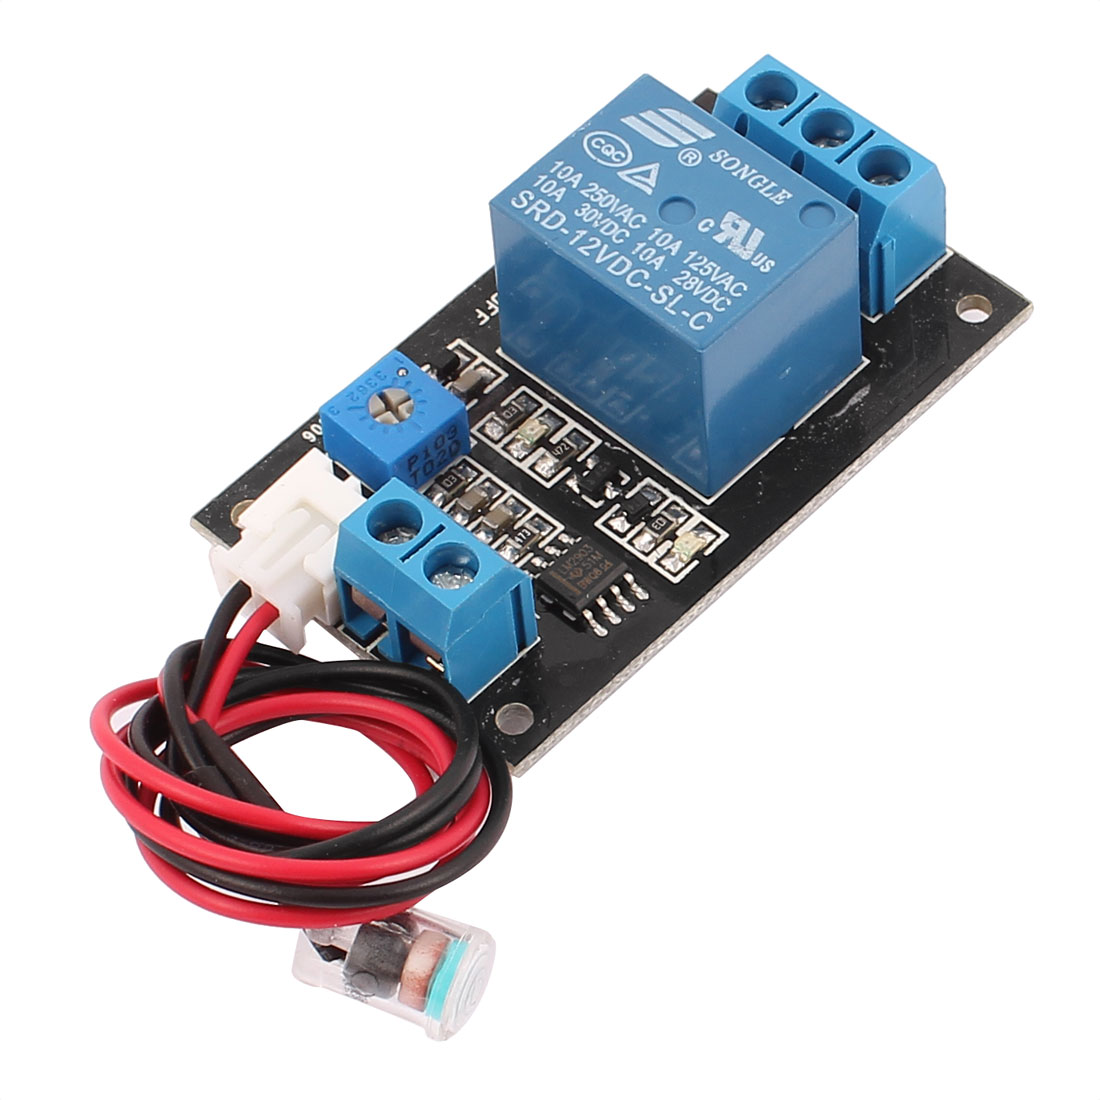 SRD-12VDC-SL-C No-light Activated Light Sensor Detector Module Board